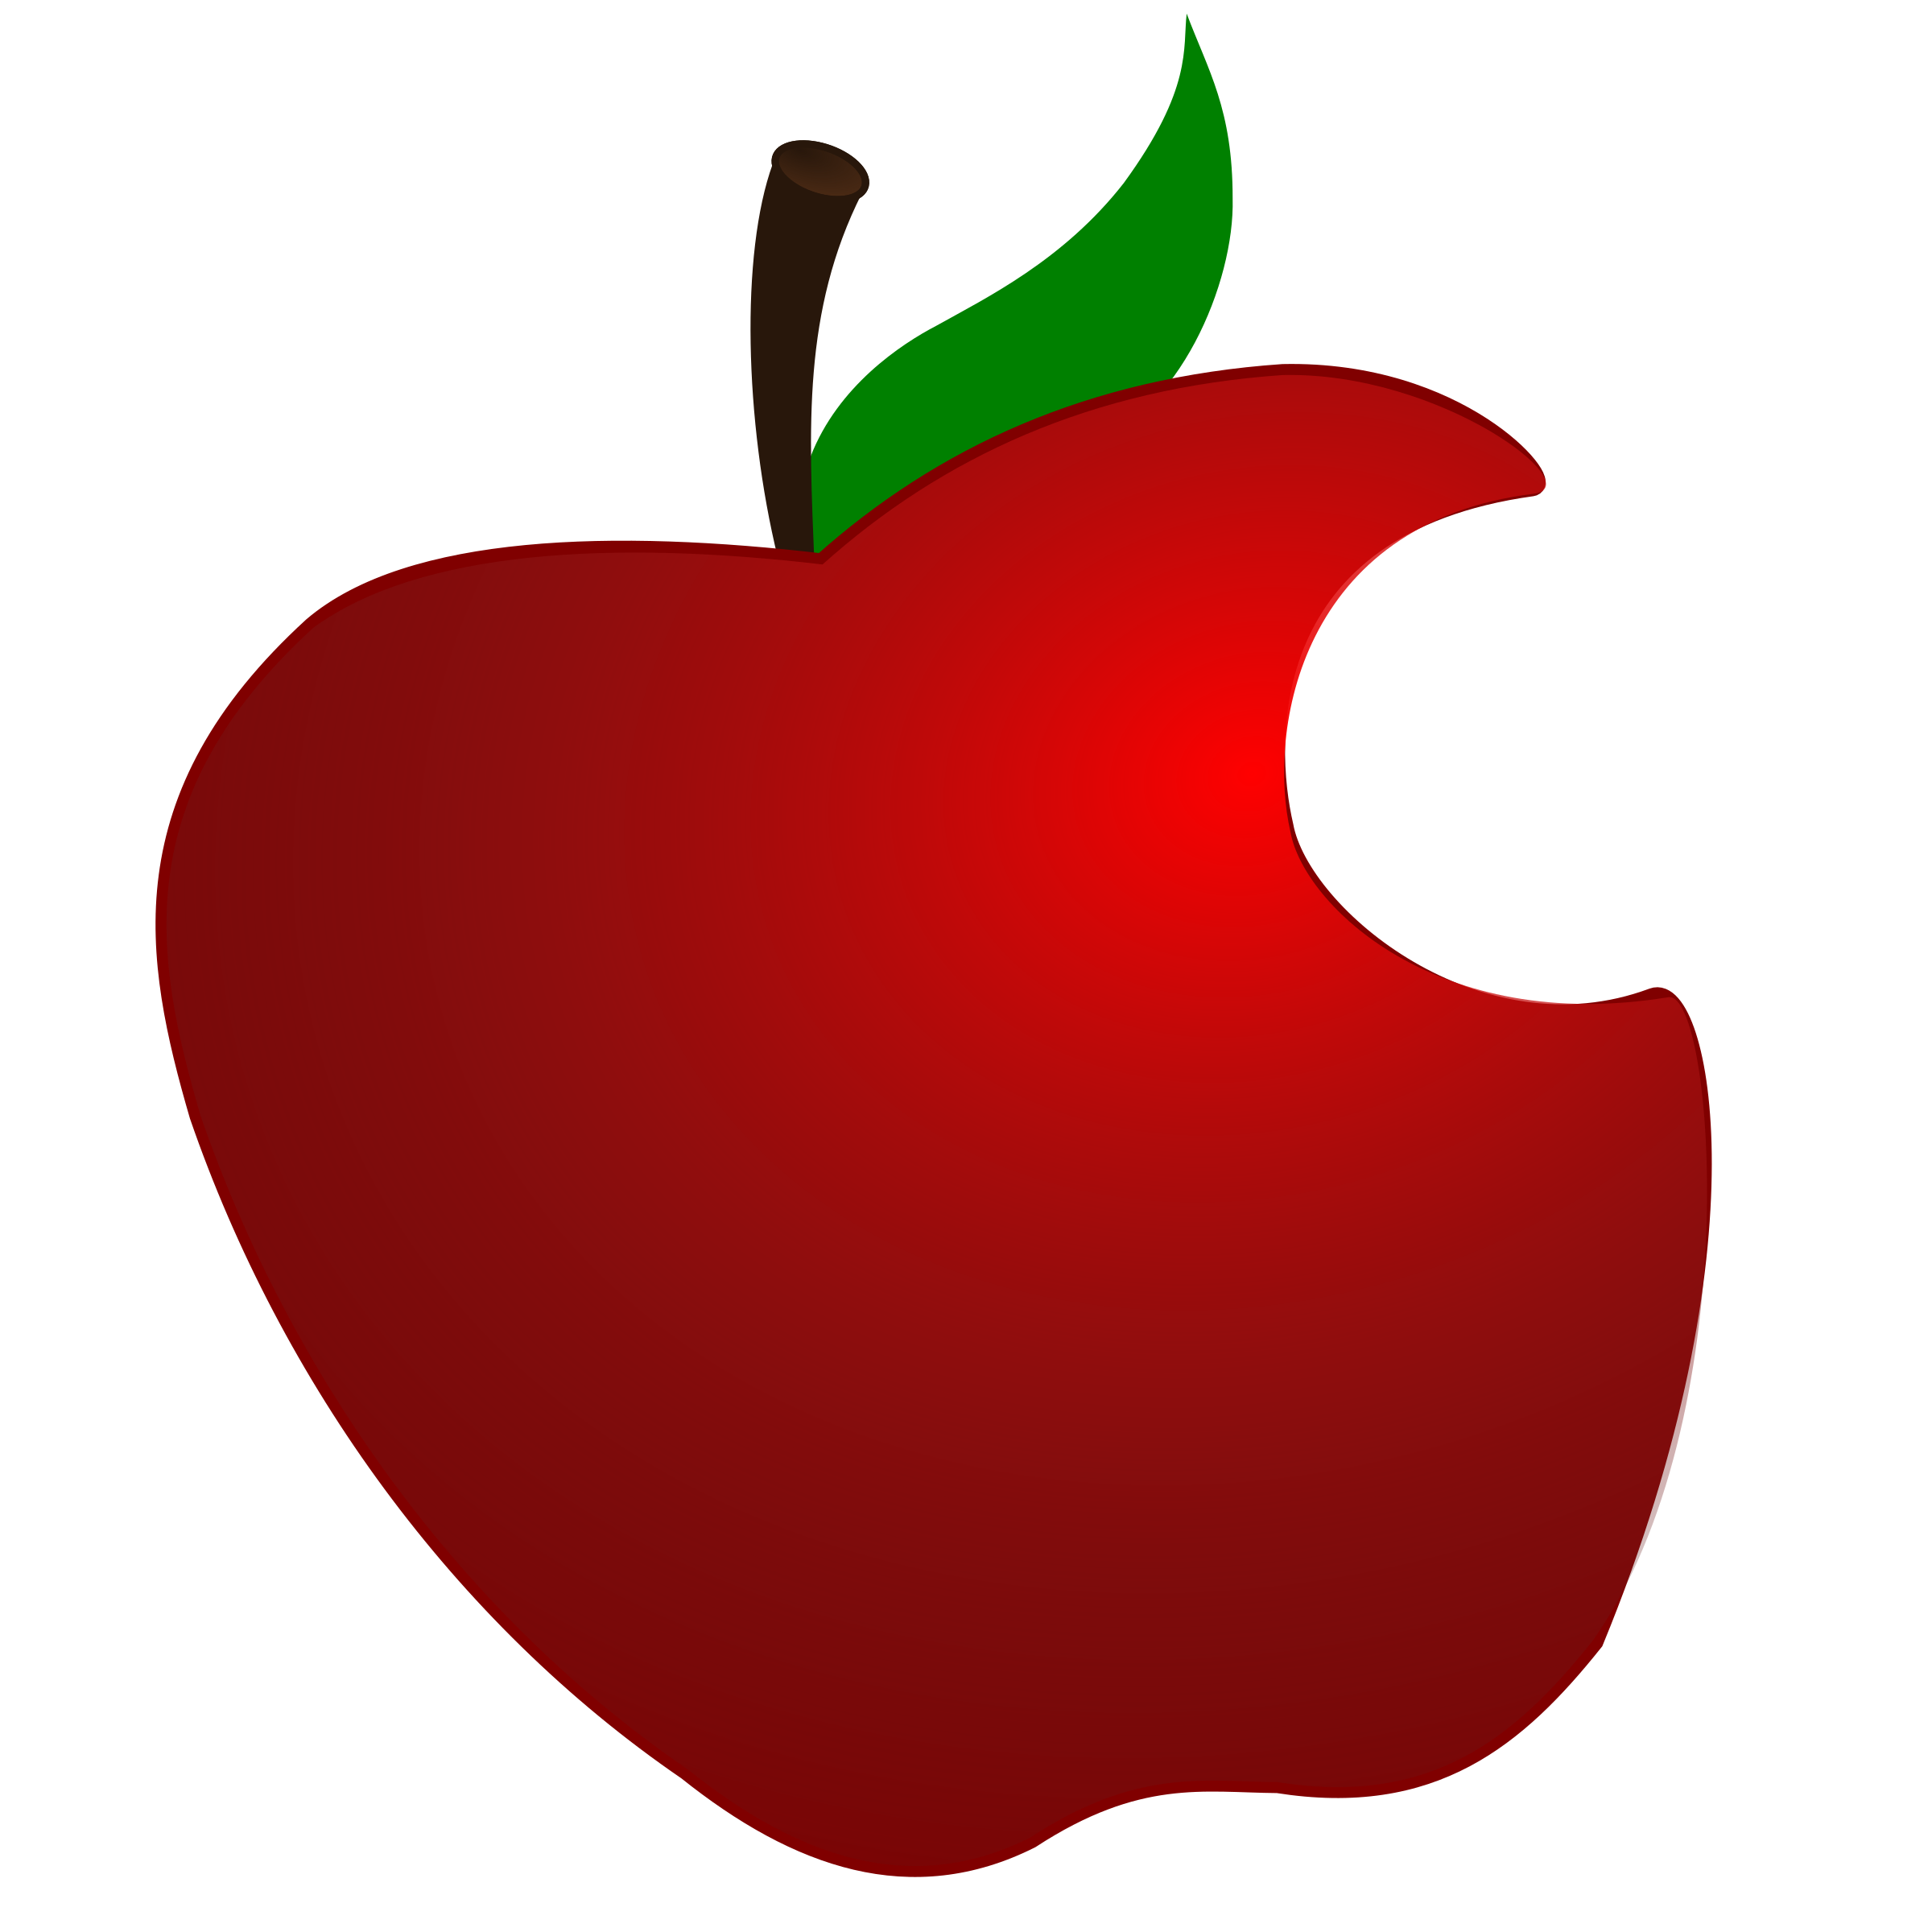 Snake clipart apple. With bite icons png